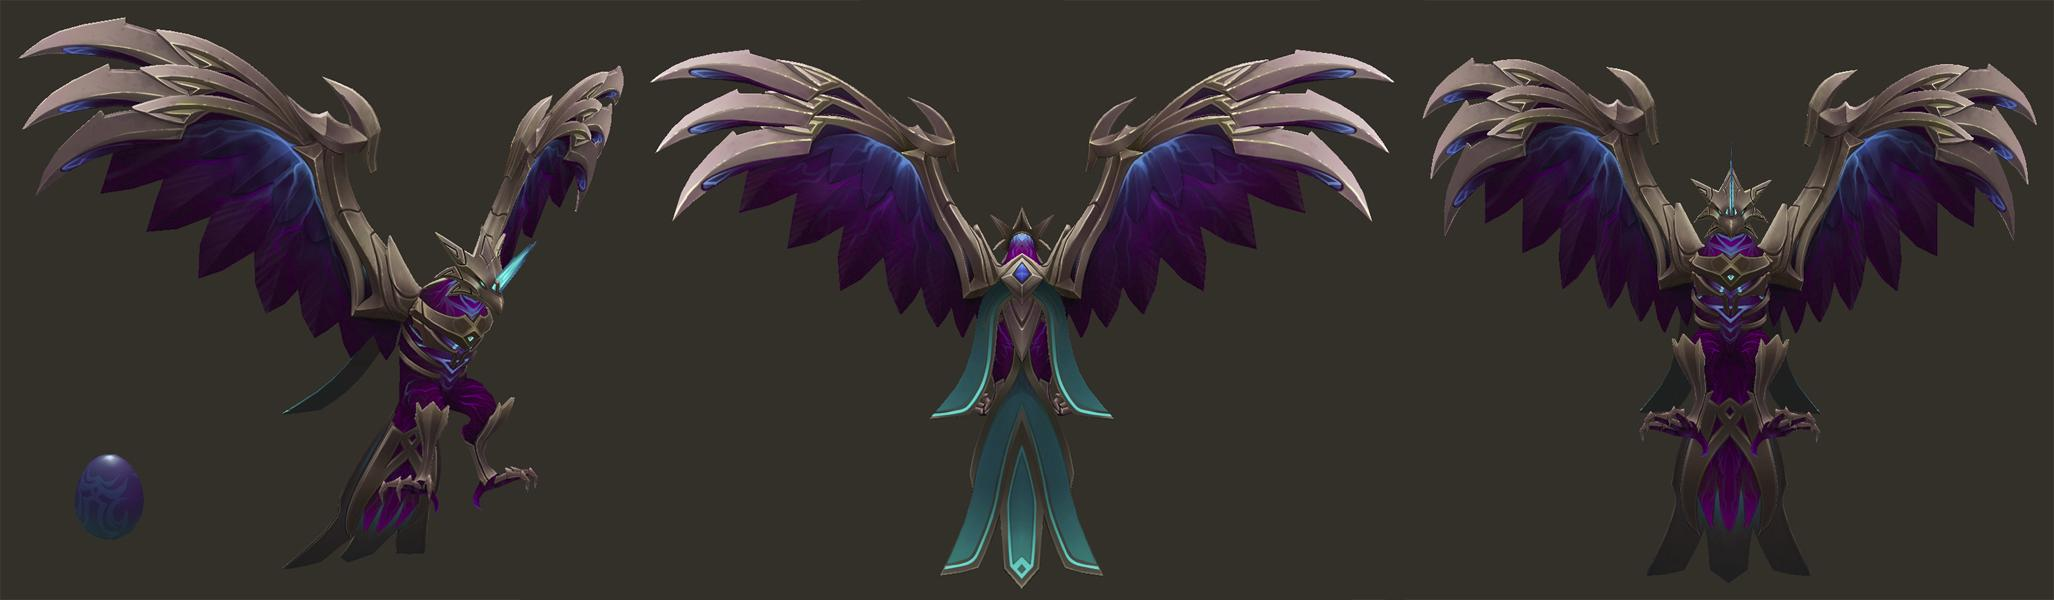 Anivia Blackfrost Model 01.png